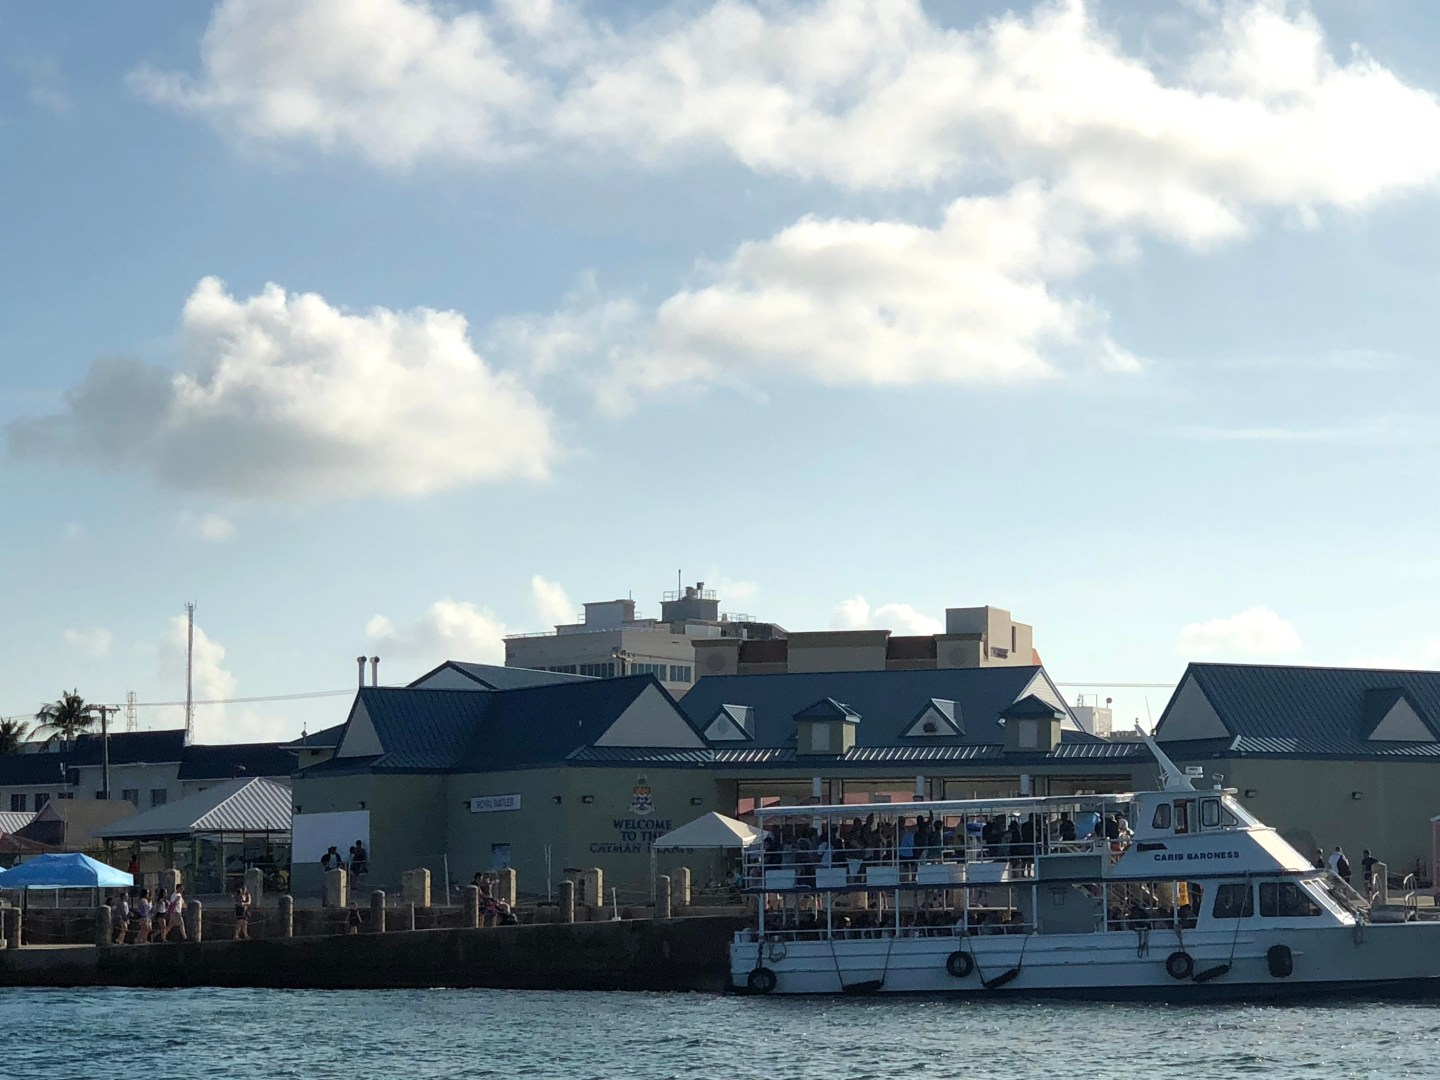 Ships for moving passengers to Grand cayman